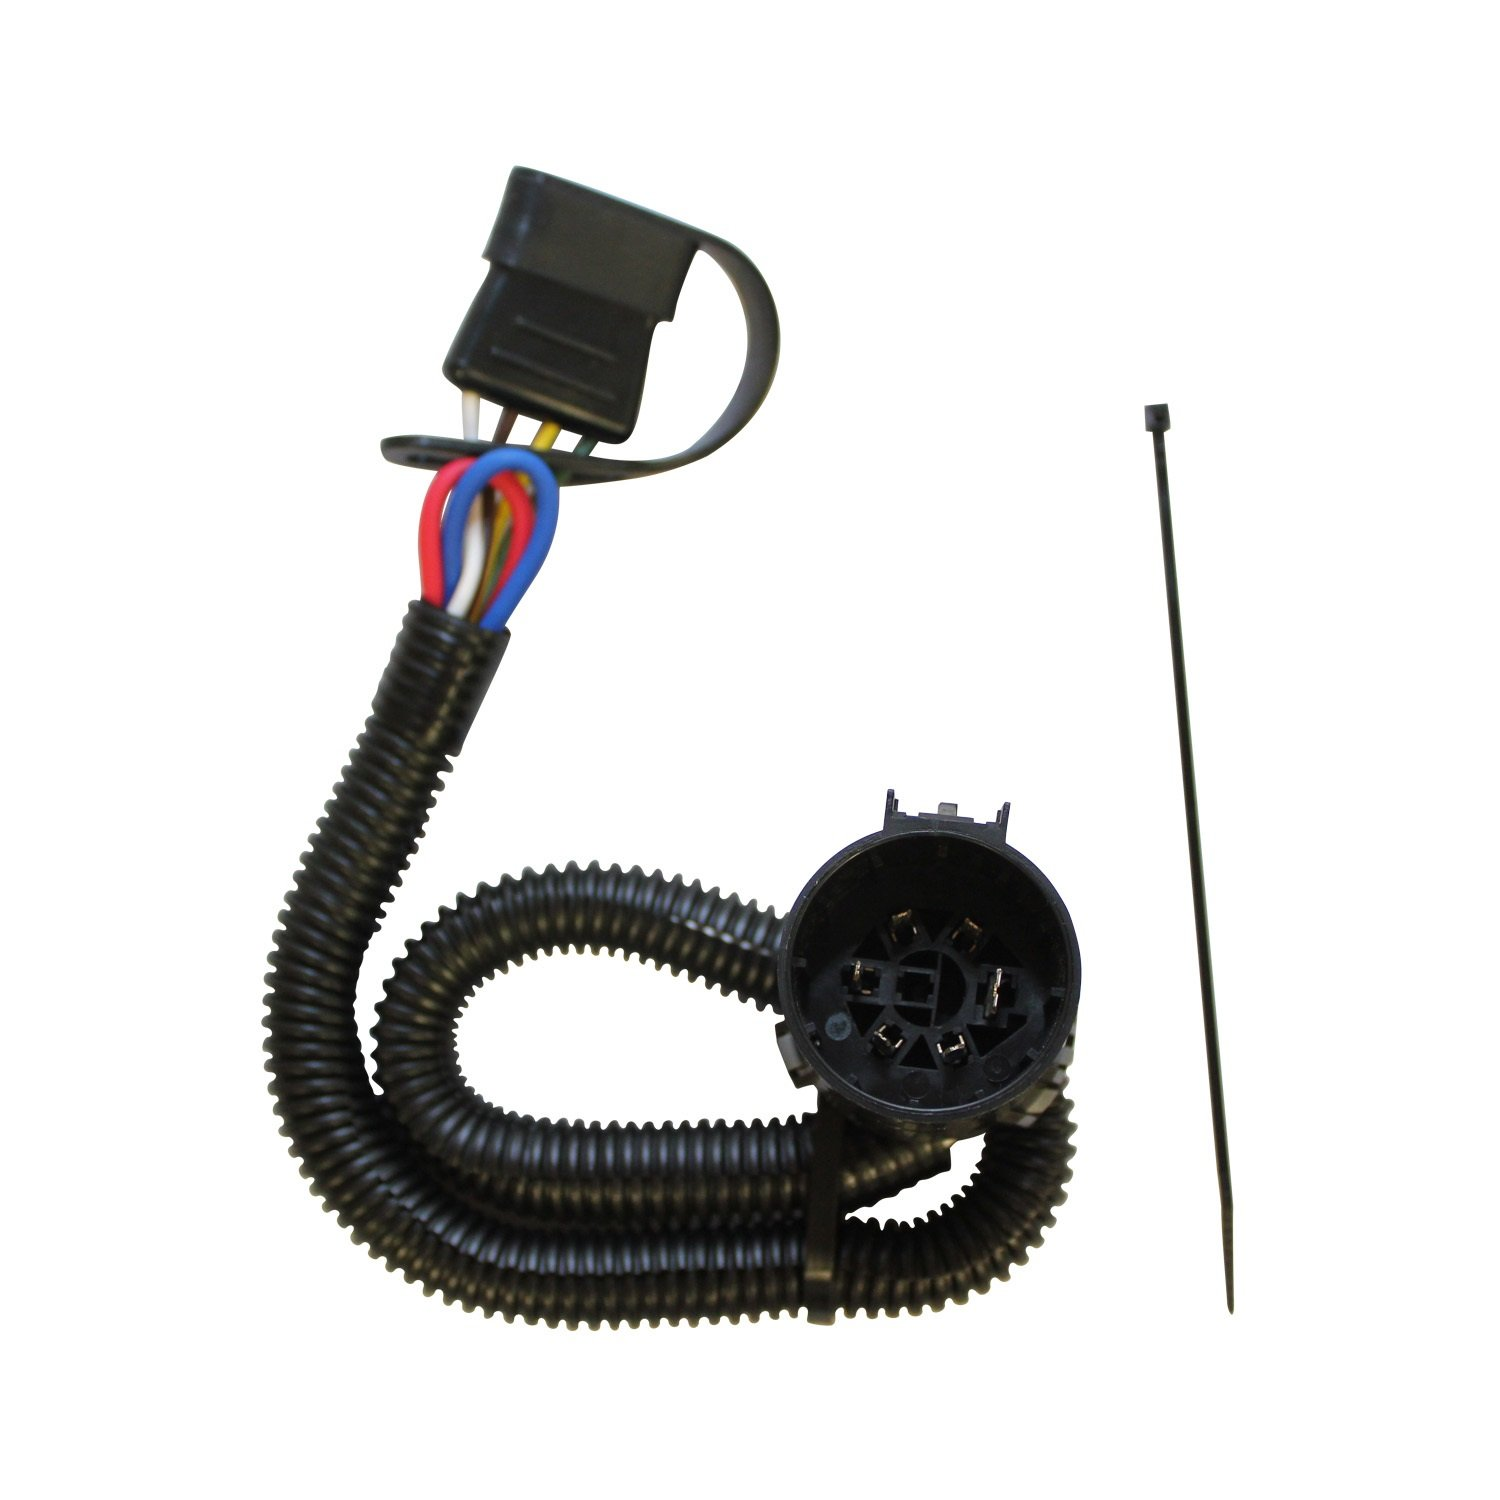 118243 Tow Ready Oem Package Wiring Harness Super Explained Amazon Com Westin 65 60013 T Connector Automotive